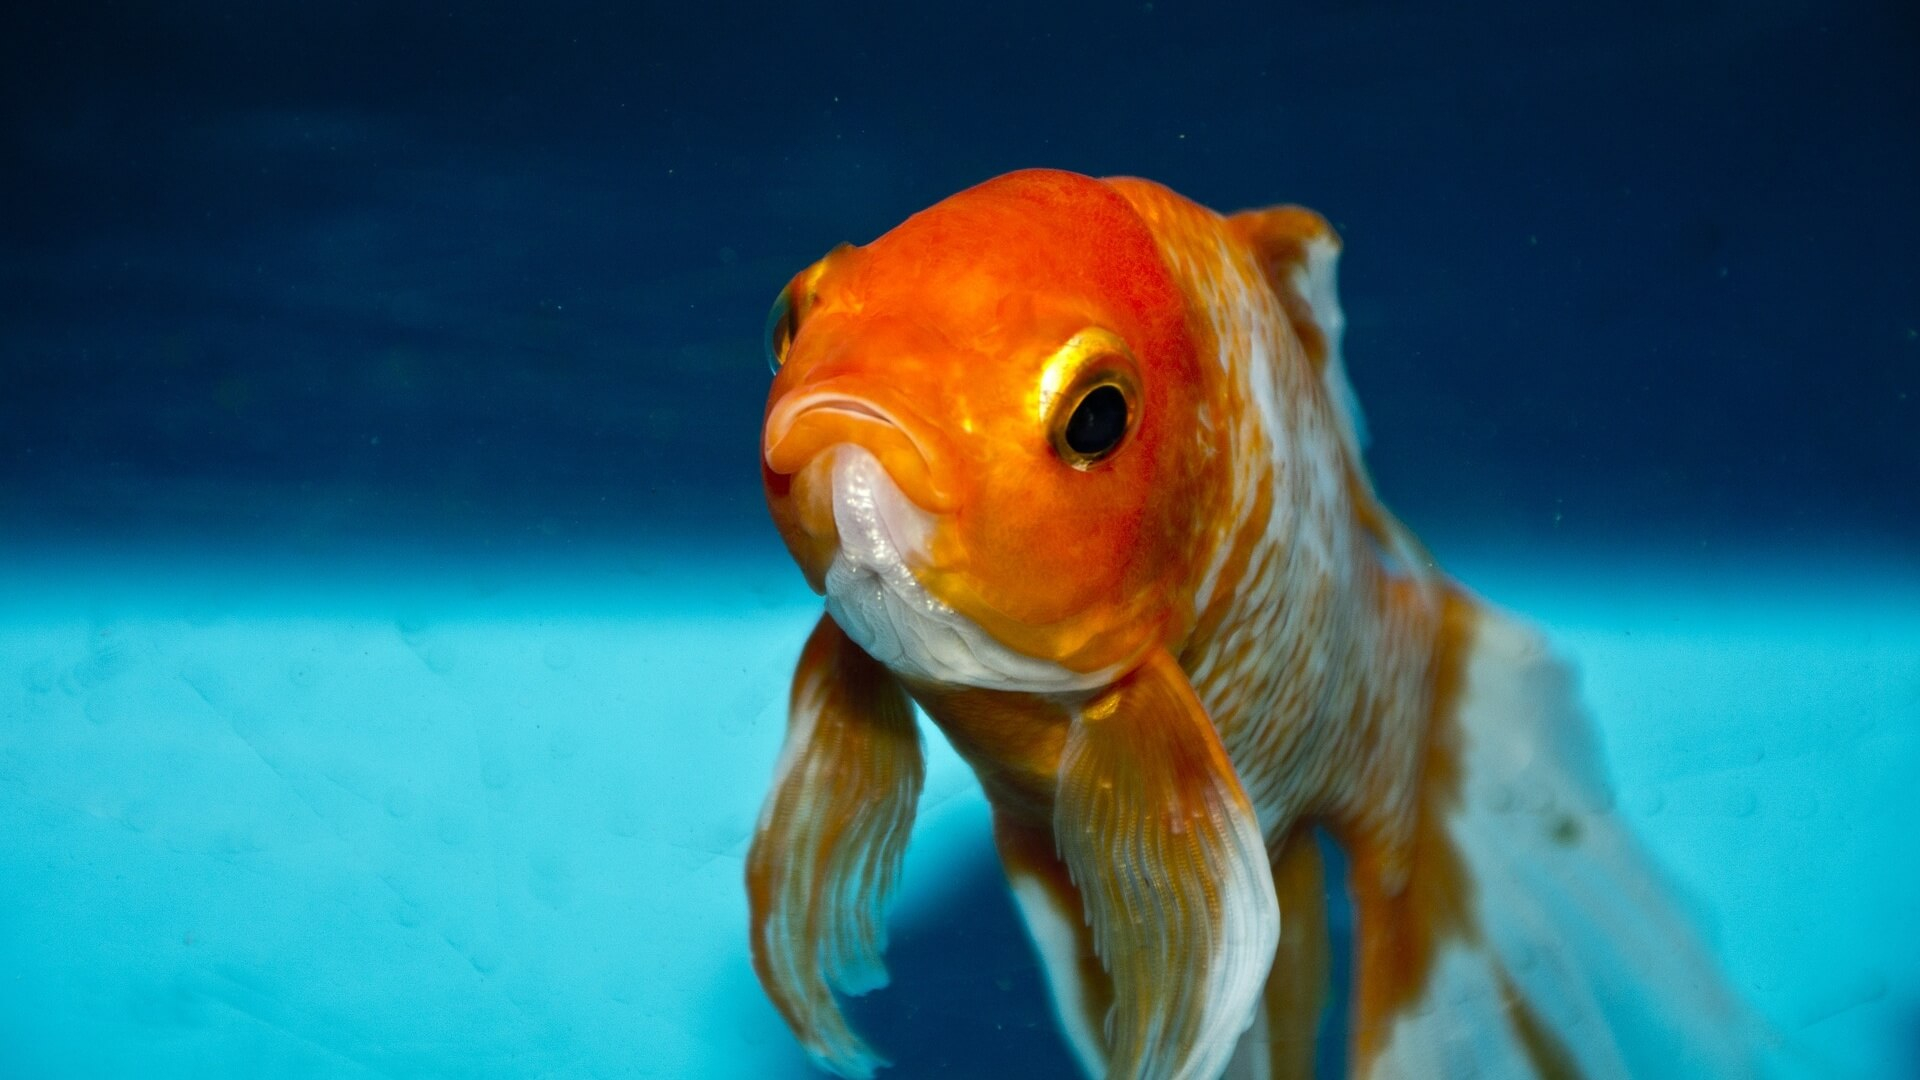 Bundoran Adventure Park in Ireland Bans Gifting Goldfish as Prizes